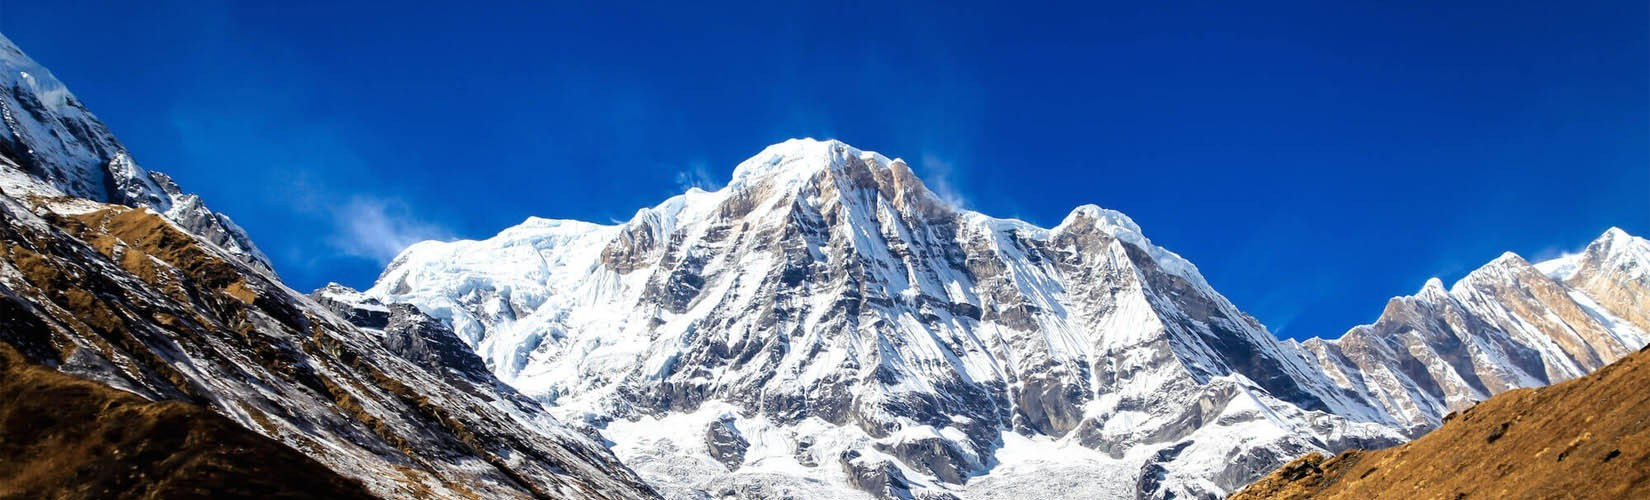 Annapurna Massif Ranges | Reasonable Treks and Tour